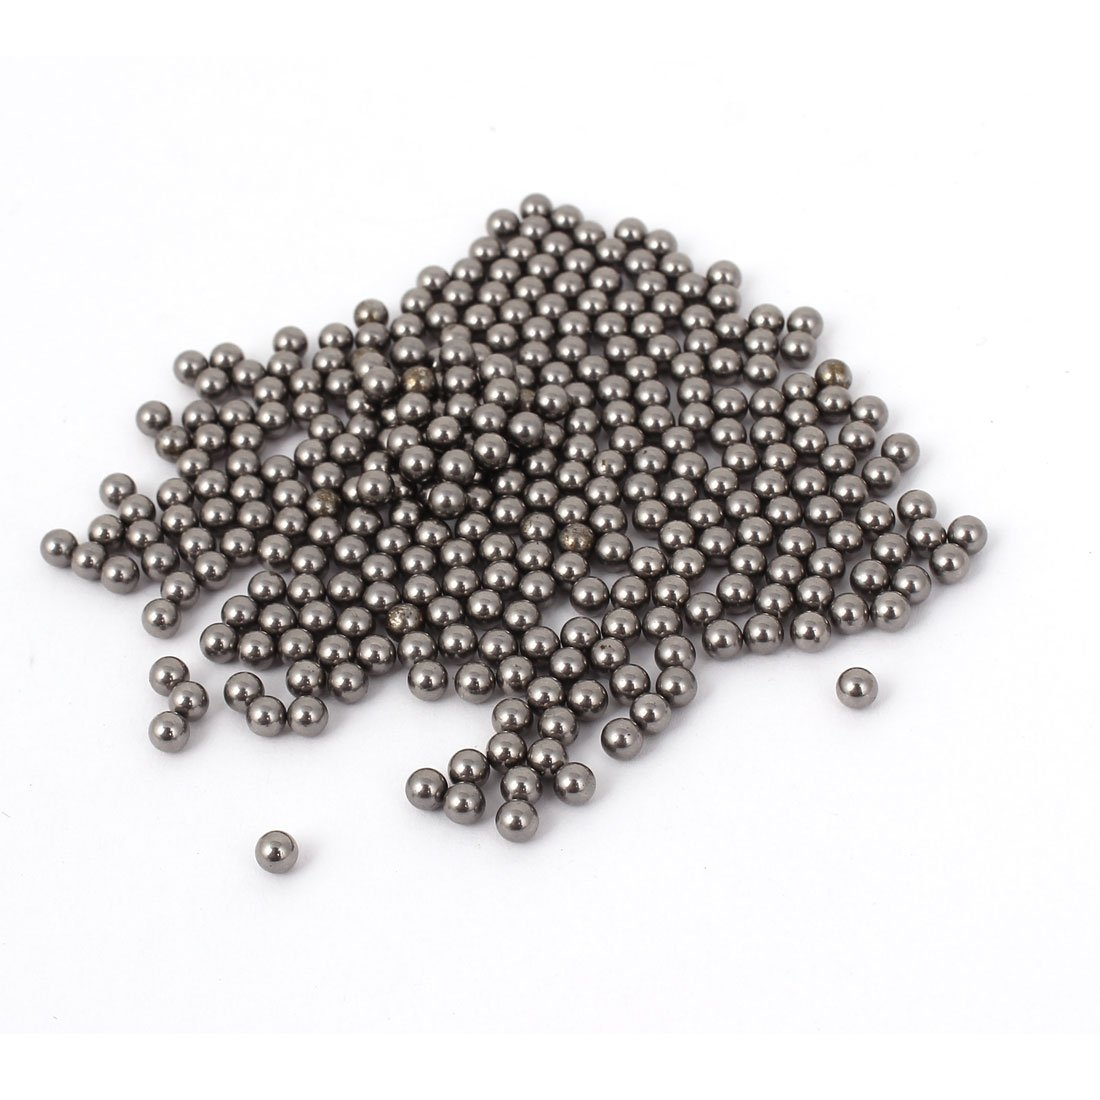 uxcell Carbon Steel Bike Bicycle Wheel Balls Bearing 3mm Diameter 500 Pcs a15010300ux0174